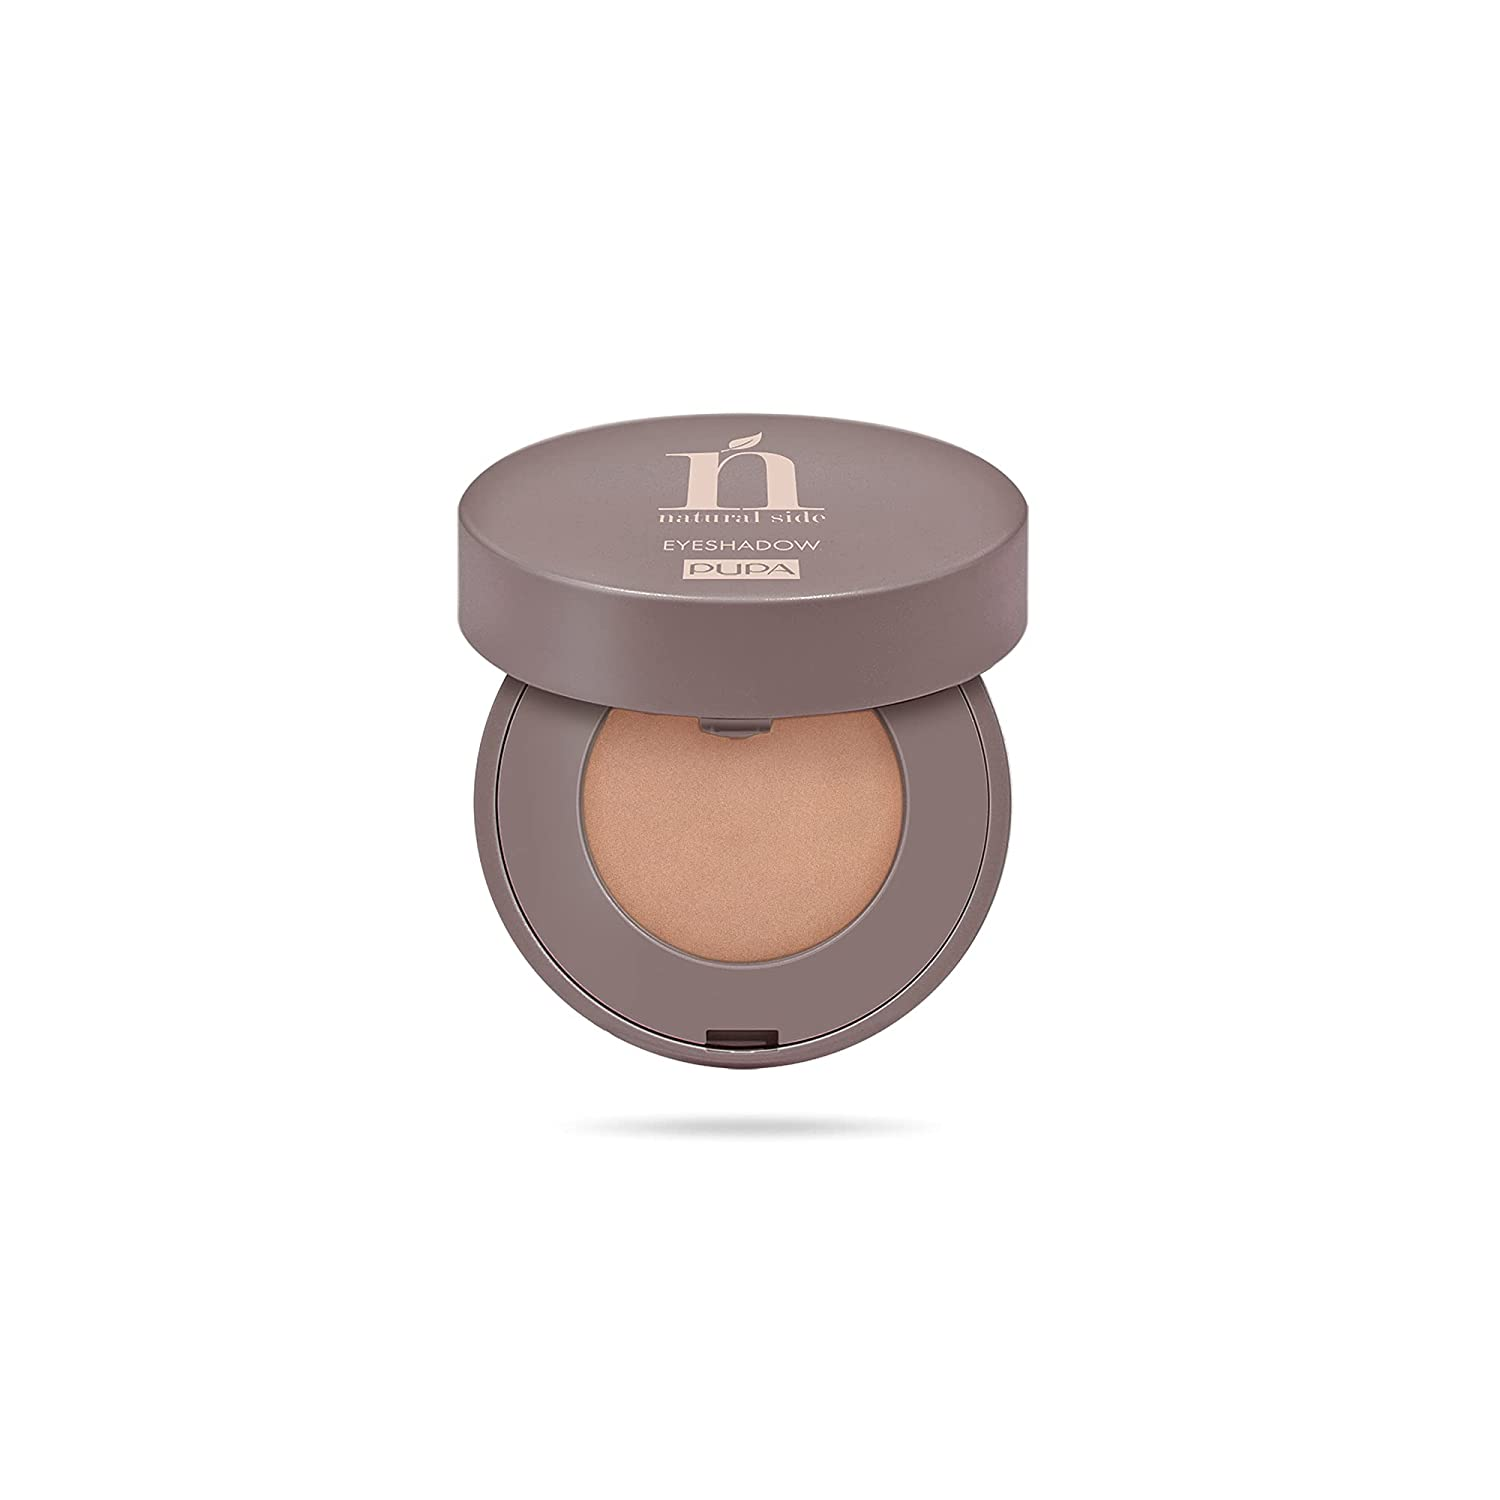 Natural Side Compact Eyeshadow – 005 Gold Glimmer by Pupa Milano for Women – 0.07 oz Eye Shadow